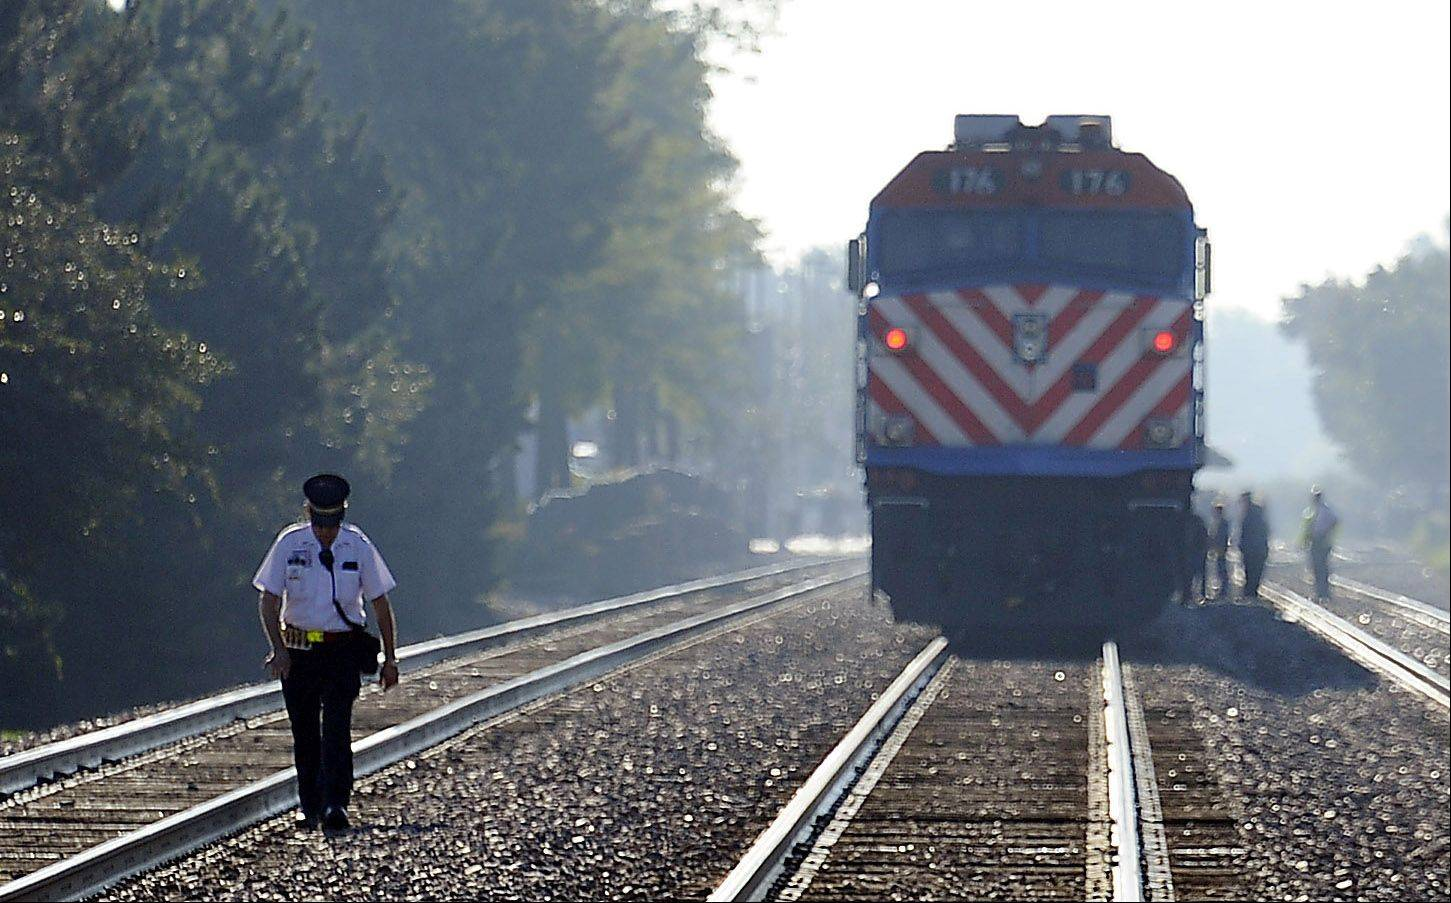 A bicyclist died Wednesday morning after being struck by a train on the Union Pacific Northwest Line in Mount Prospect, police said. The victim was a 95-year-old Mount Prospect man.